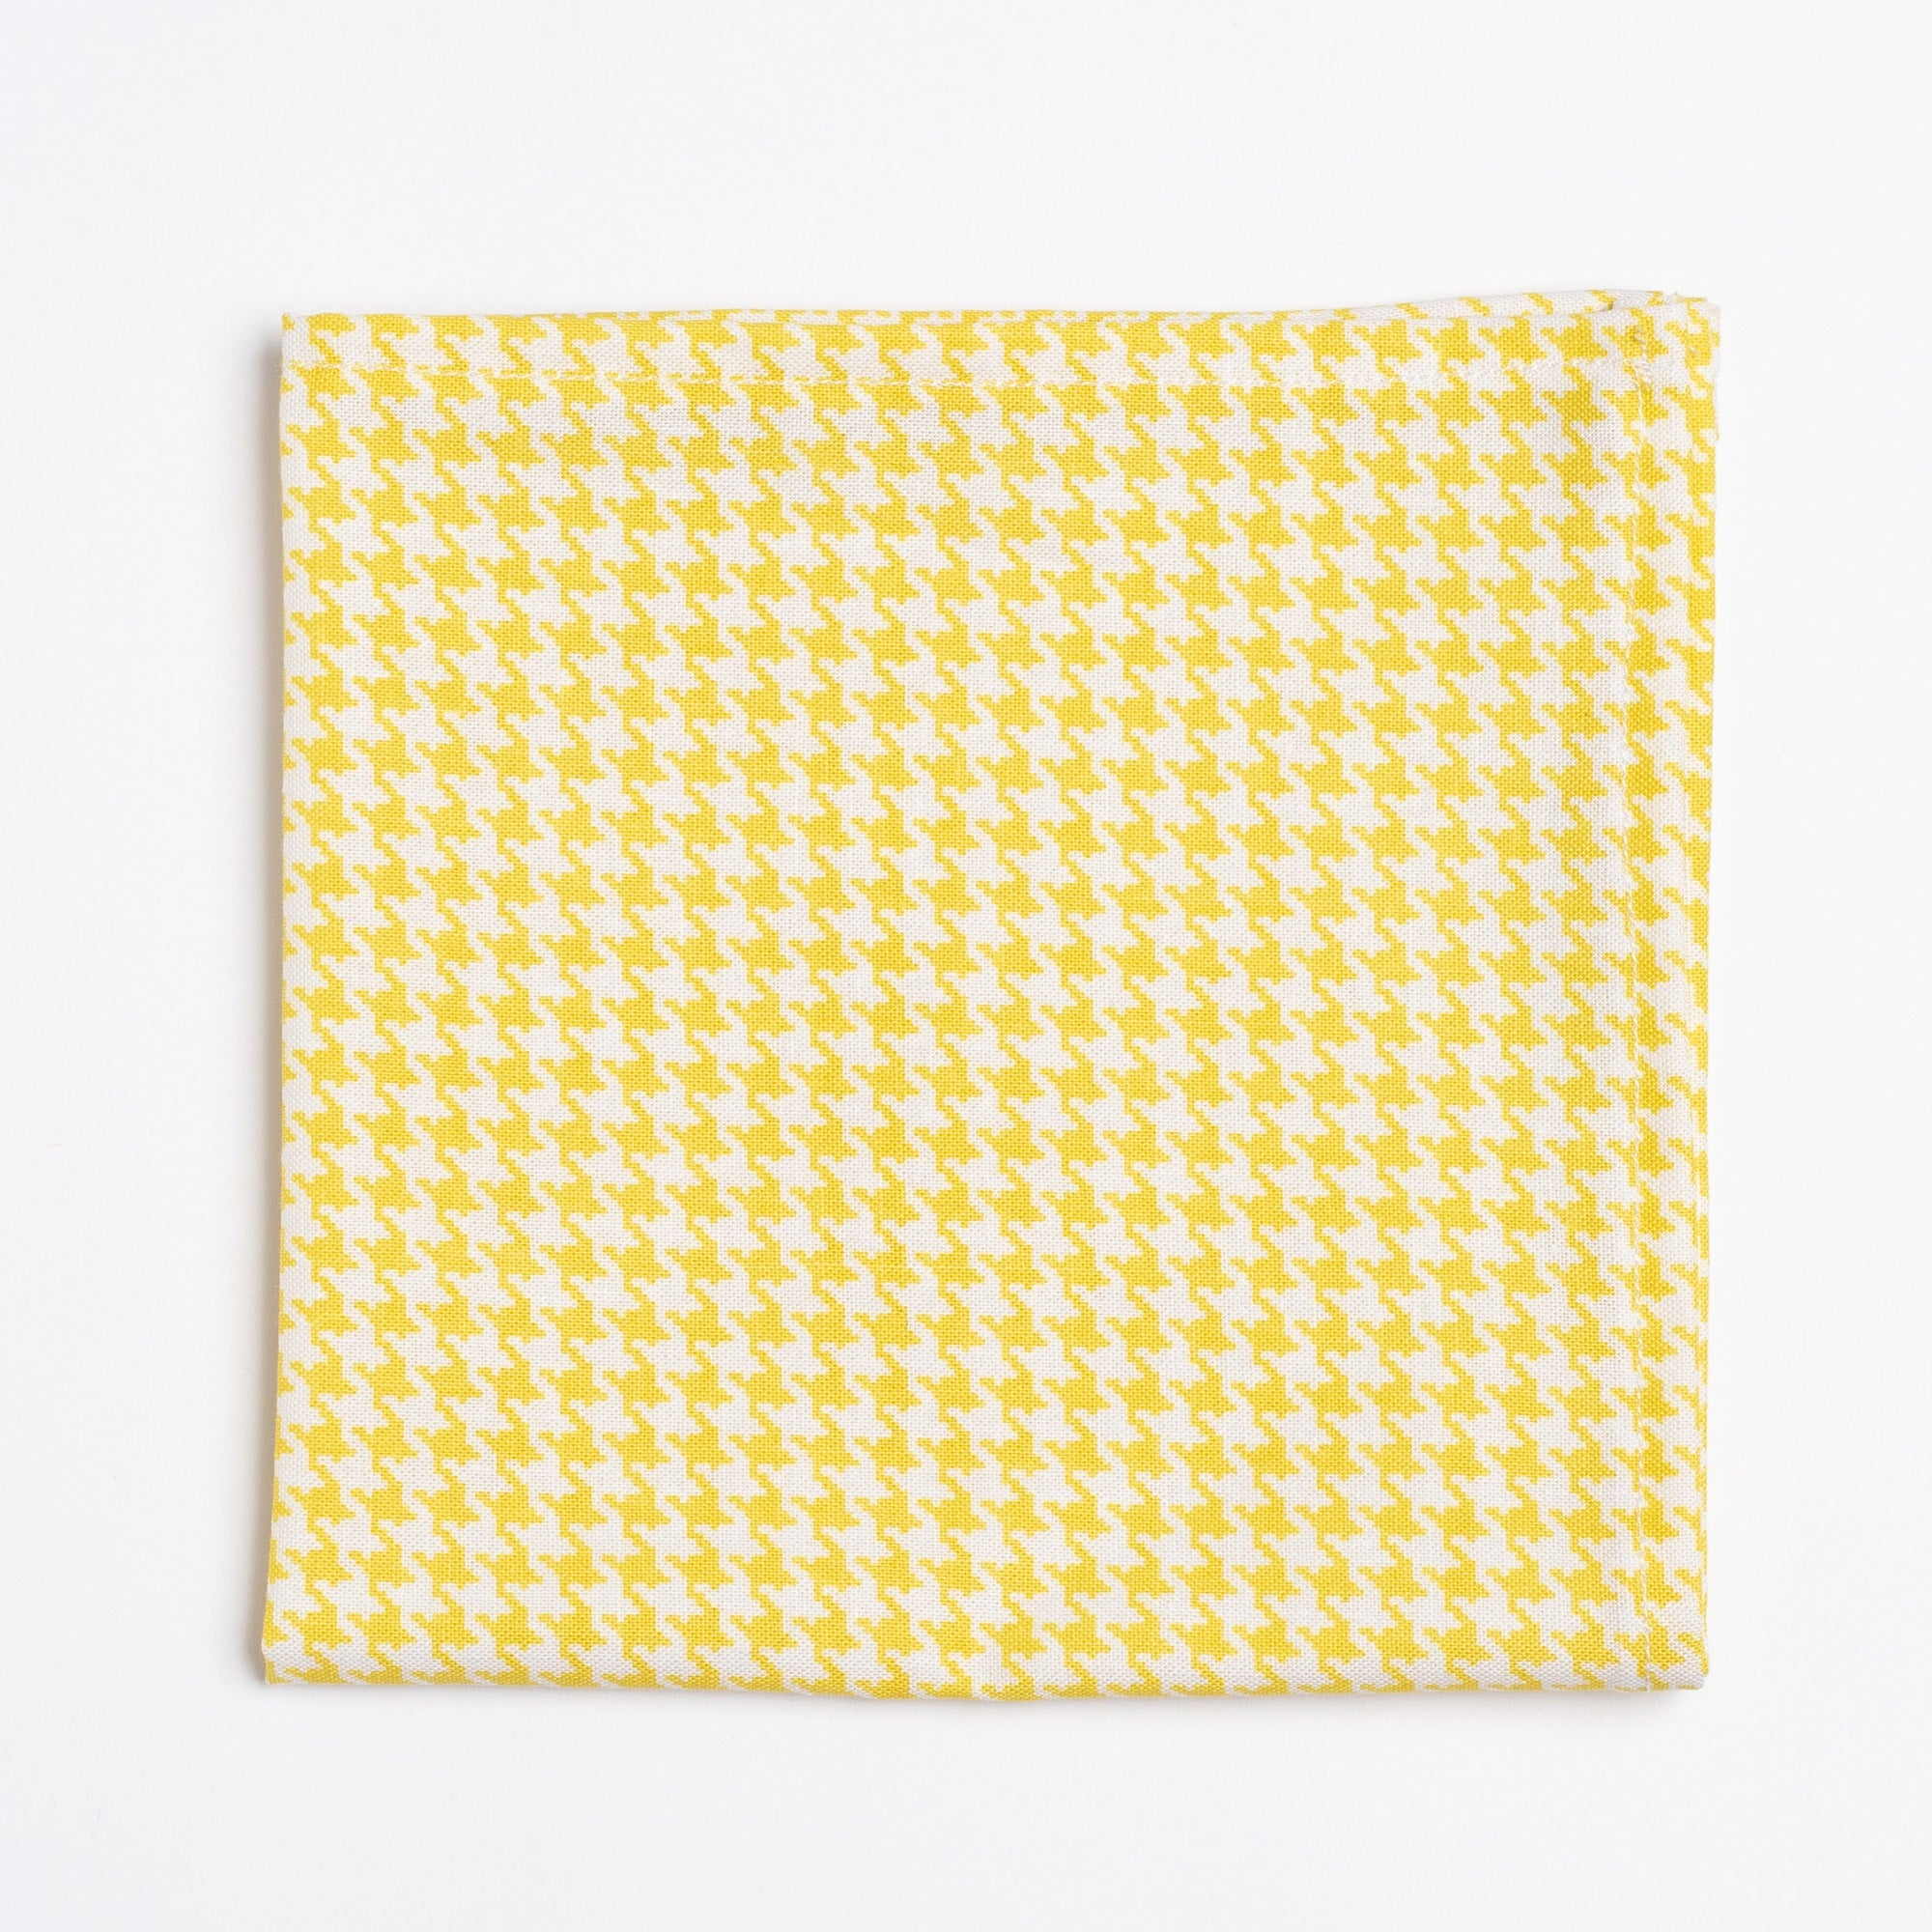 yellow and white houndstooth pattern pocket square - Oxford Square